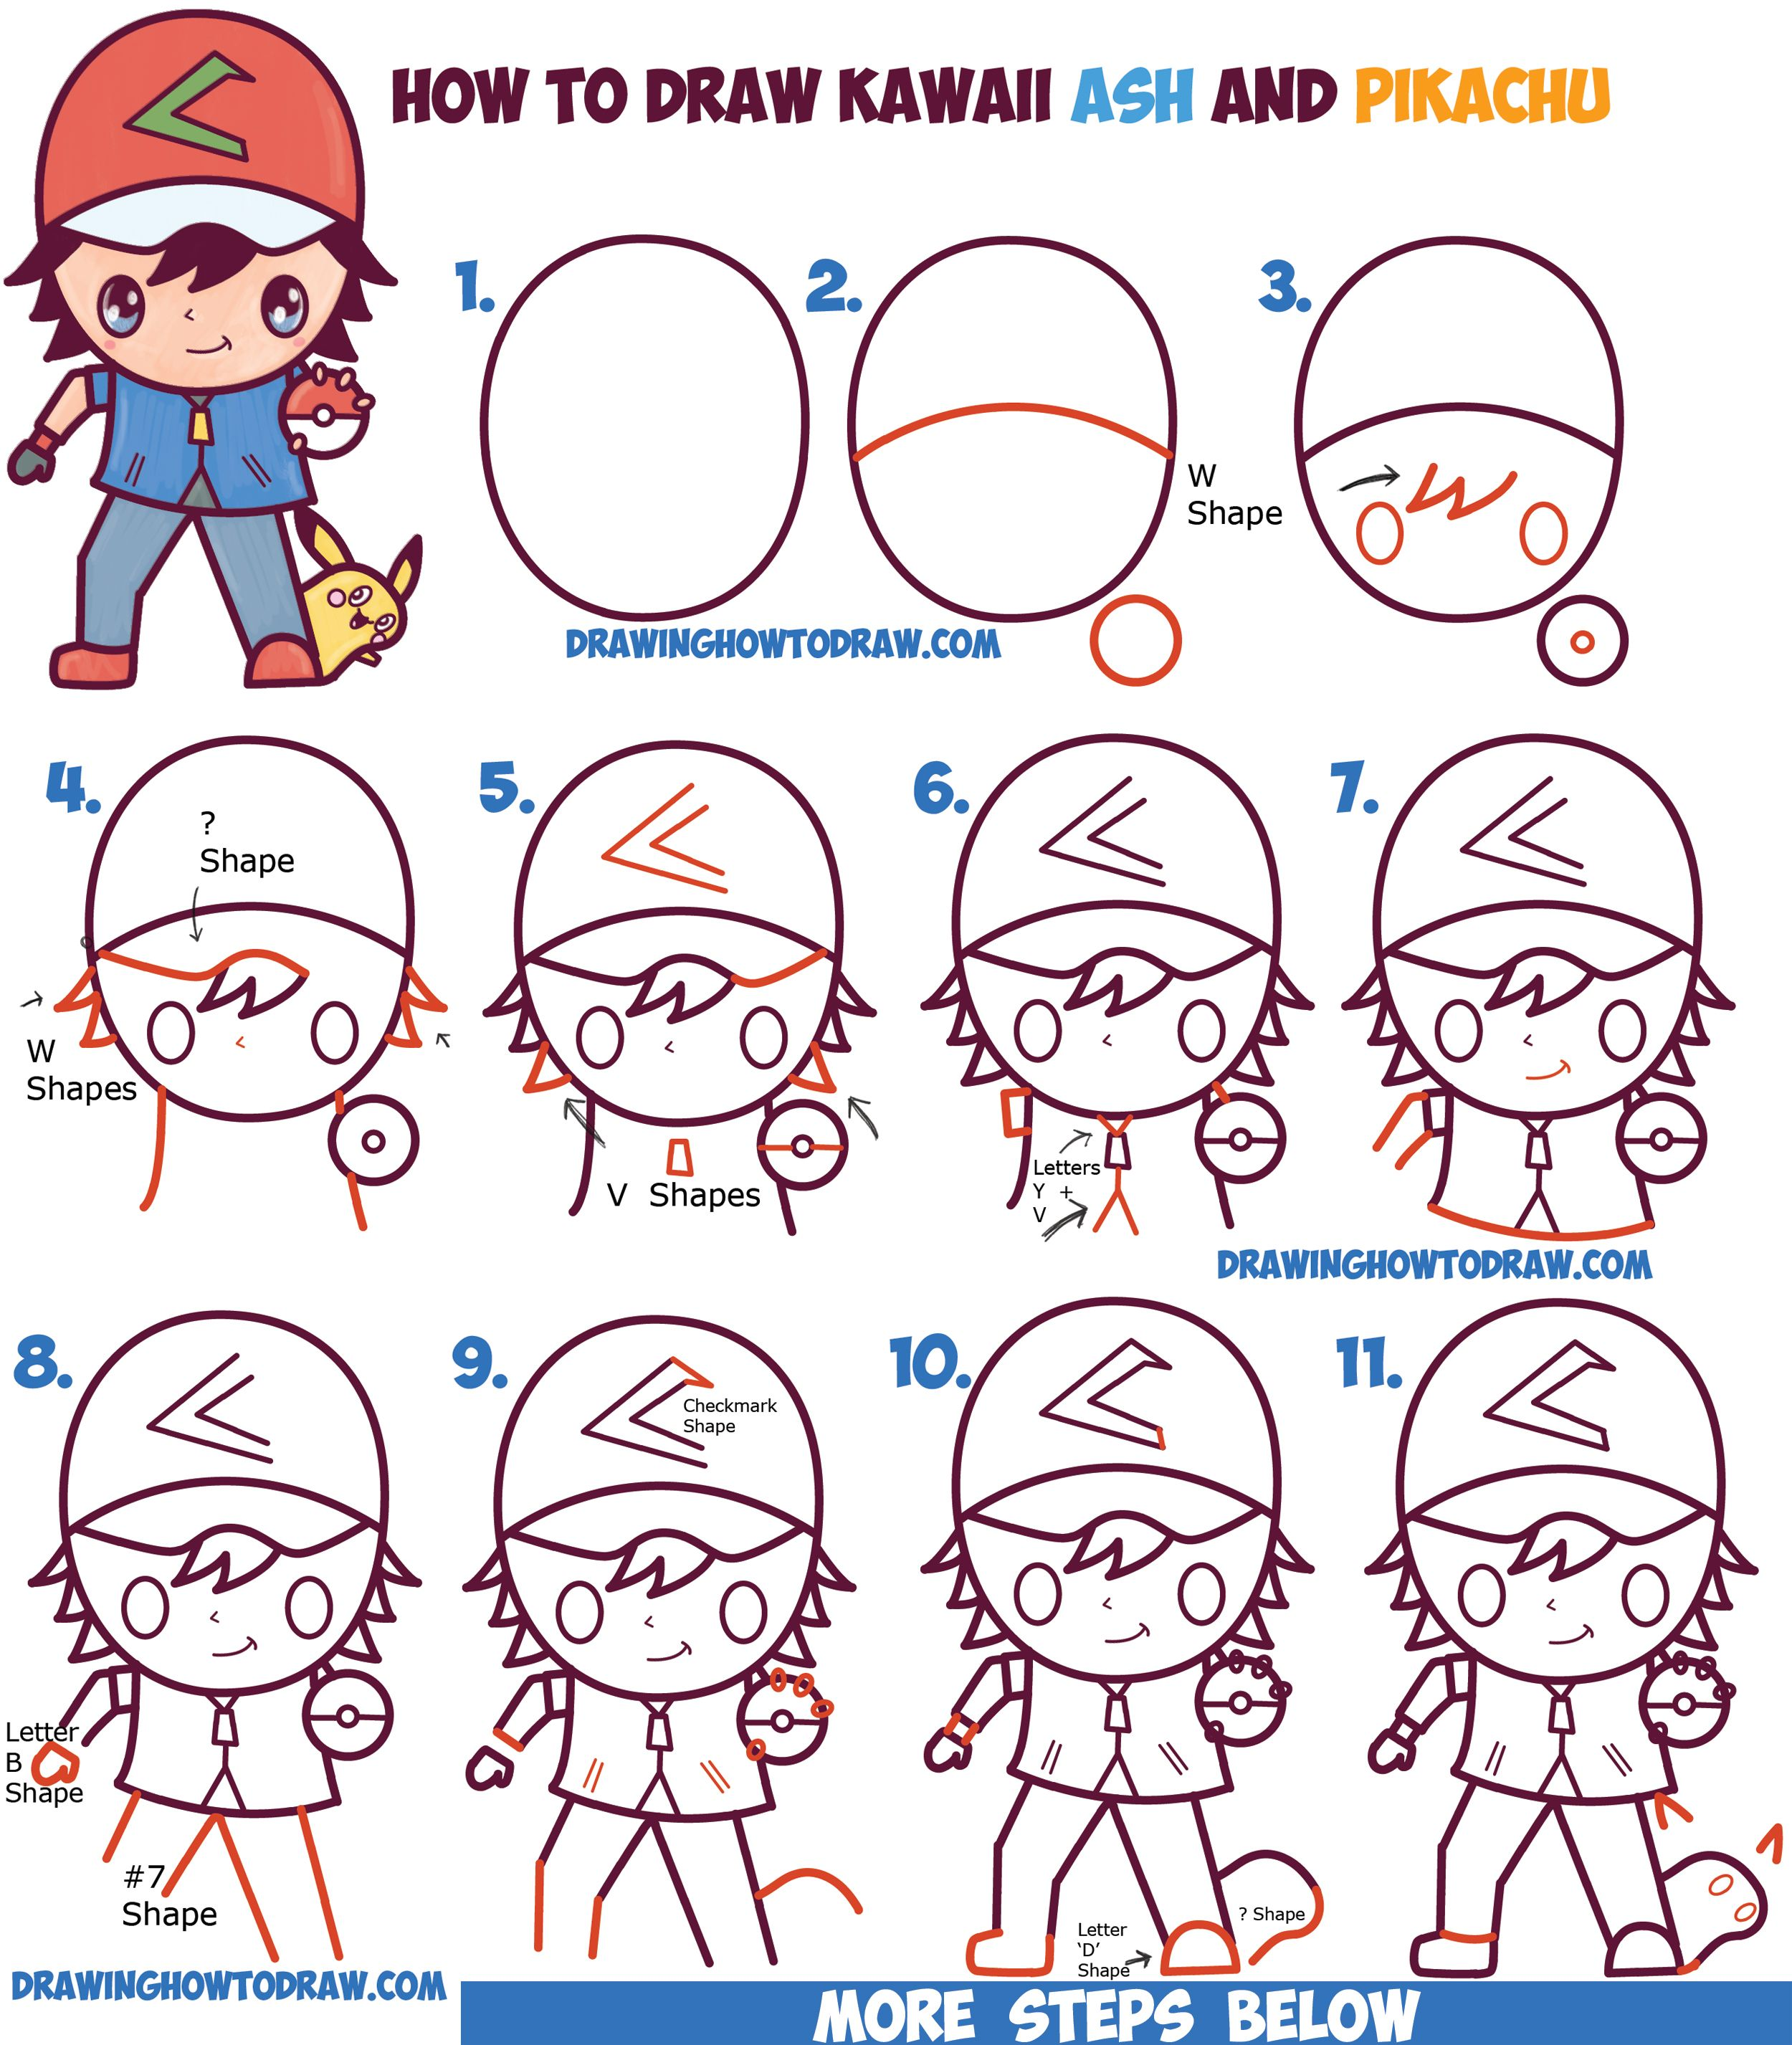 How to Draw Cute Kawaii Chibi Ash Ketchum and Pikachu from ...